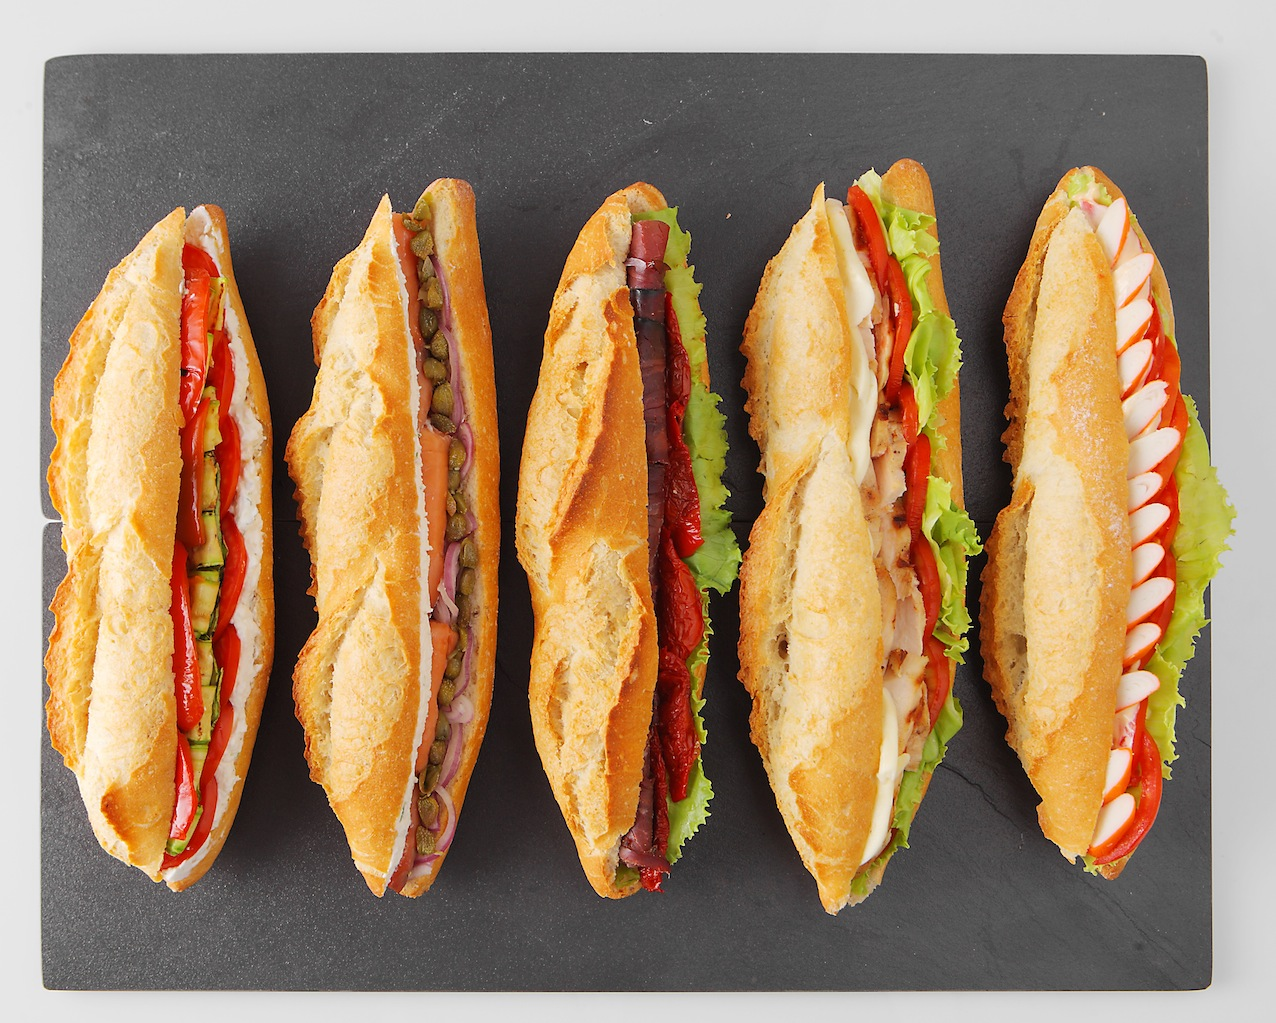 baguette sandwich selection